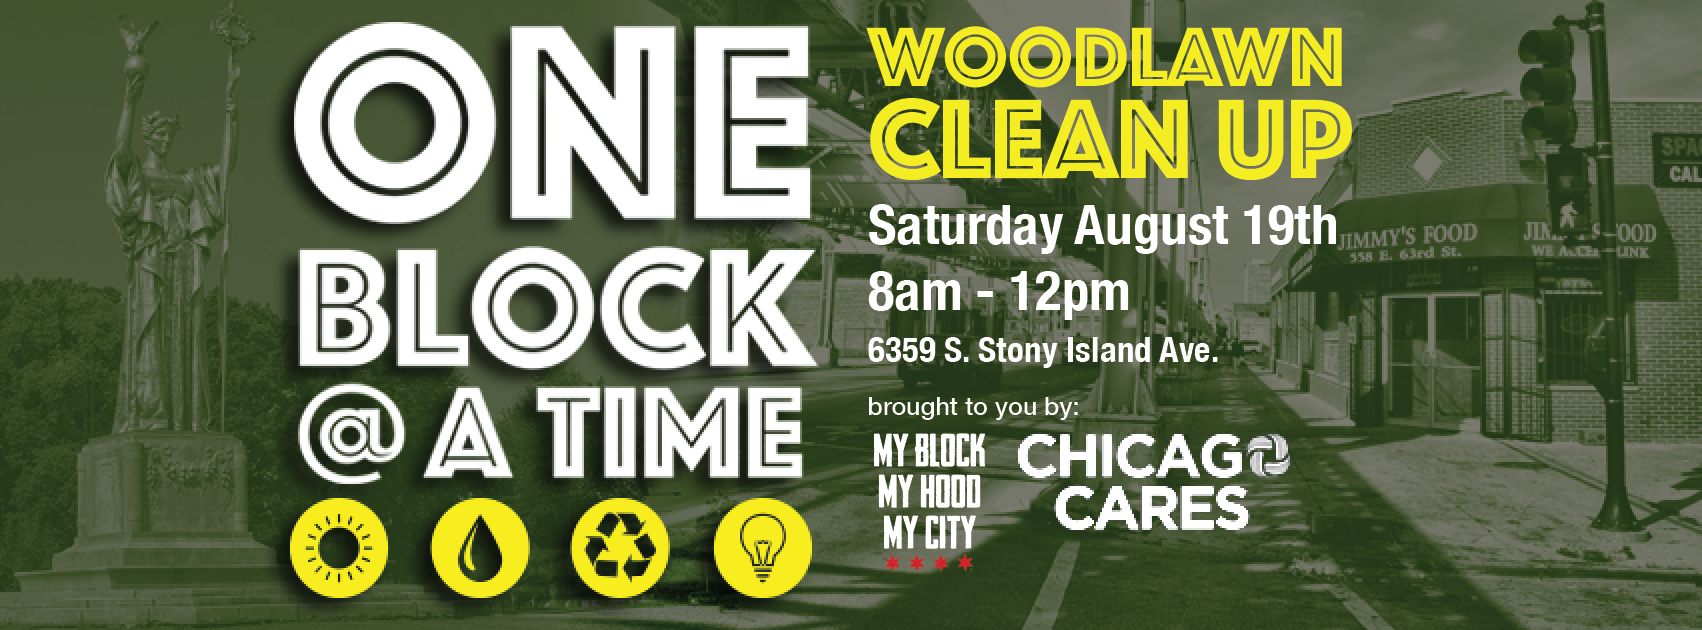 In the spirit of interconnectivity and civic duty, join My Block, My Hood, My City as we continue our 'One Block at A Time' initiative this August. In partnership with Chicago Cares, My Block, My Hood, My City is looking for volunteers to support our neighbors in the Woodlawn community through various beautification service projects. Volunteers will engage in a morning of service, starting at the Jackson Park Fieldhouse, where we will check-in and kickoff. Volunteers will disperse and serve at various sites throughout the community, including community gardens, park and lot clean up sites, and a mosaic project with Green Star Movement. Sign up here:   https://www.chicagocares.org/opportunity/a0CA000000oNFh0MAG